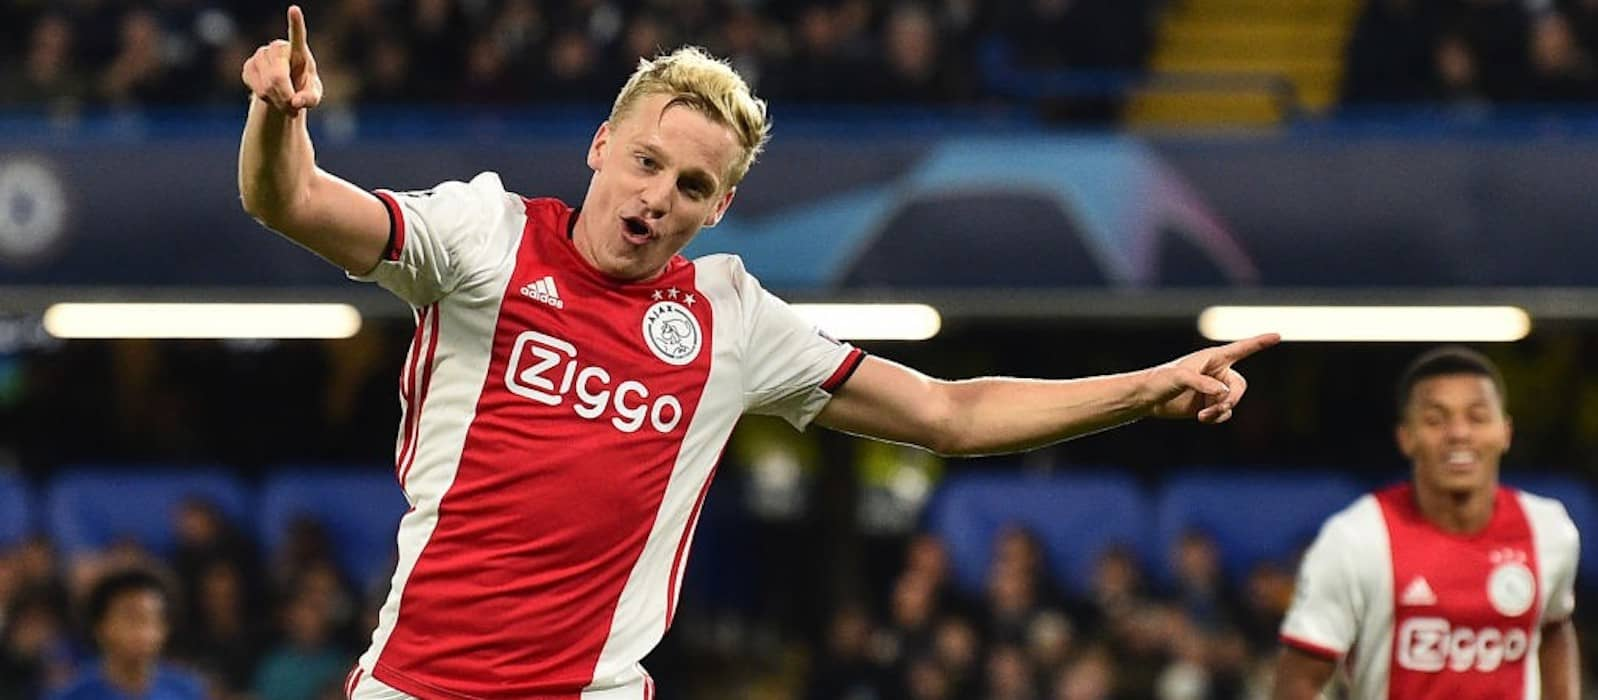 Ajax CEO says Donny van de Beek will leave club this summer